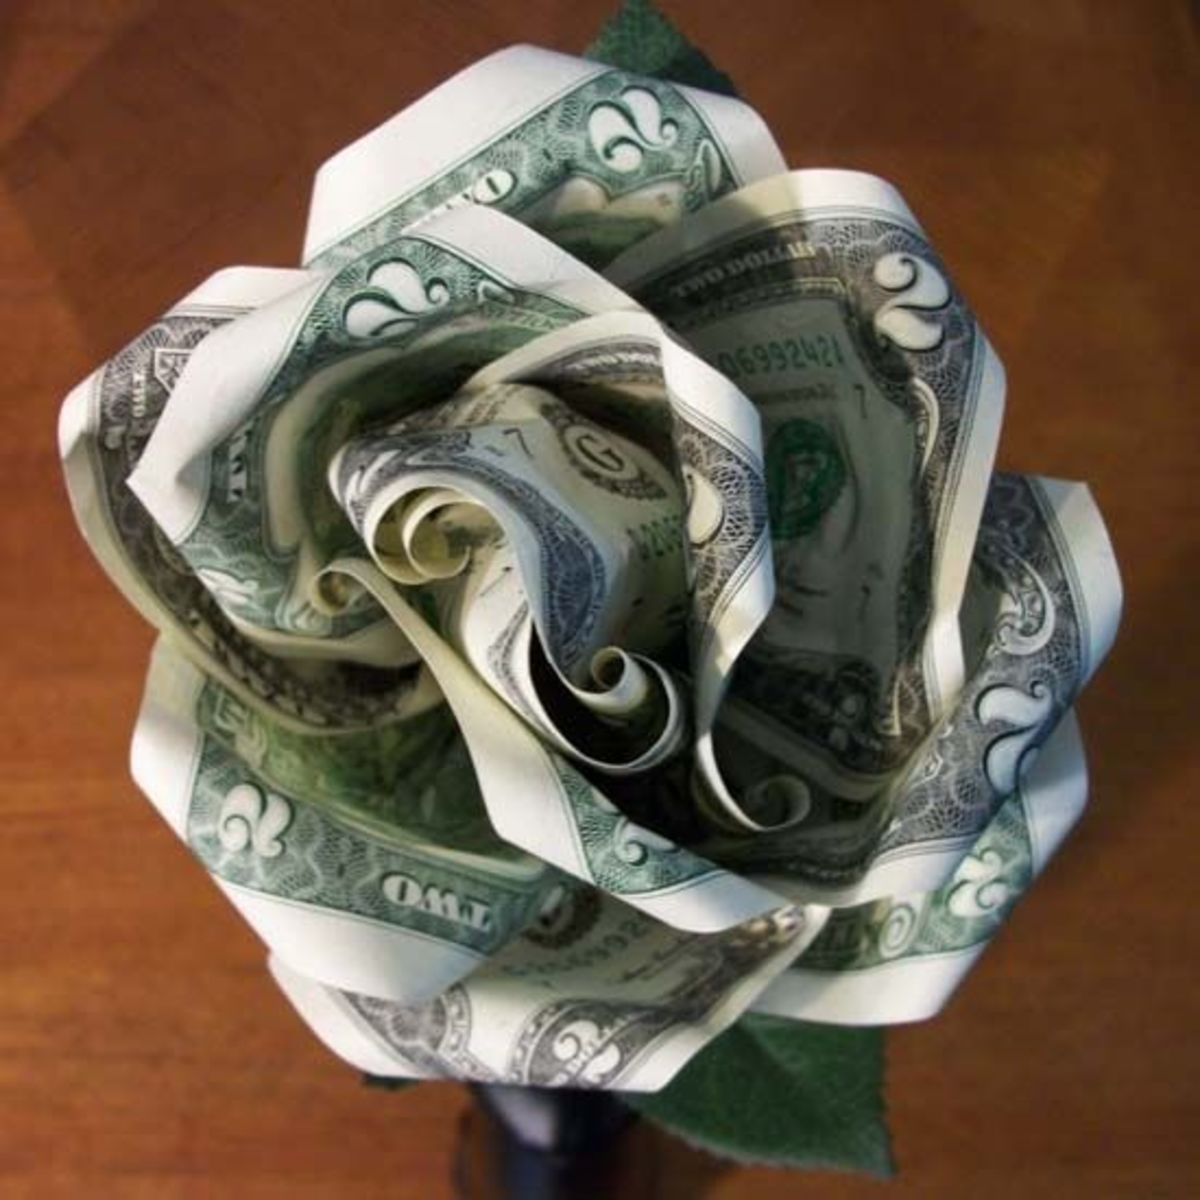 This bloom is made of two-dollar bills. I used six two-dollar bills—five became petals and the sixth became the bud in the center.